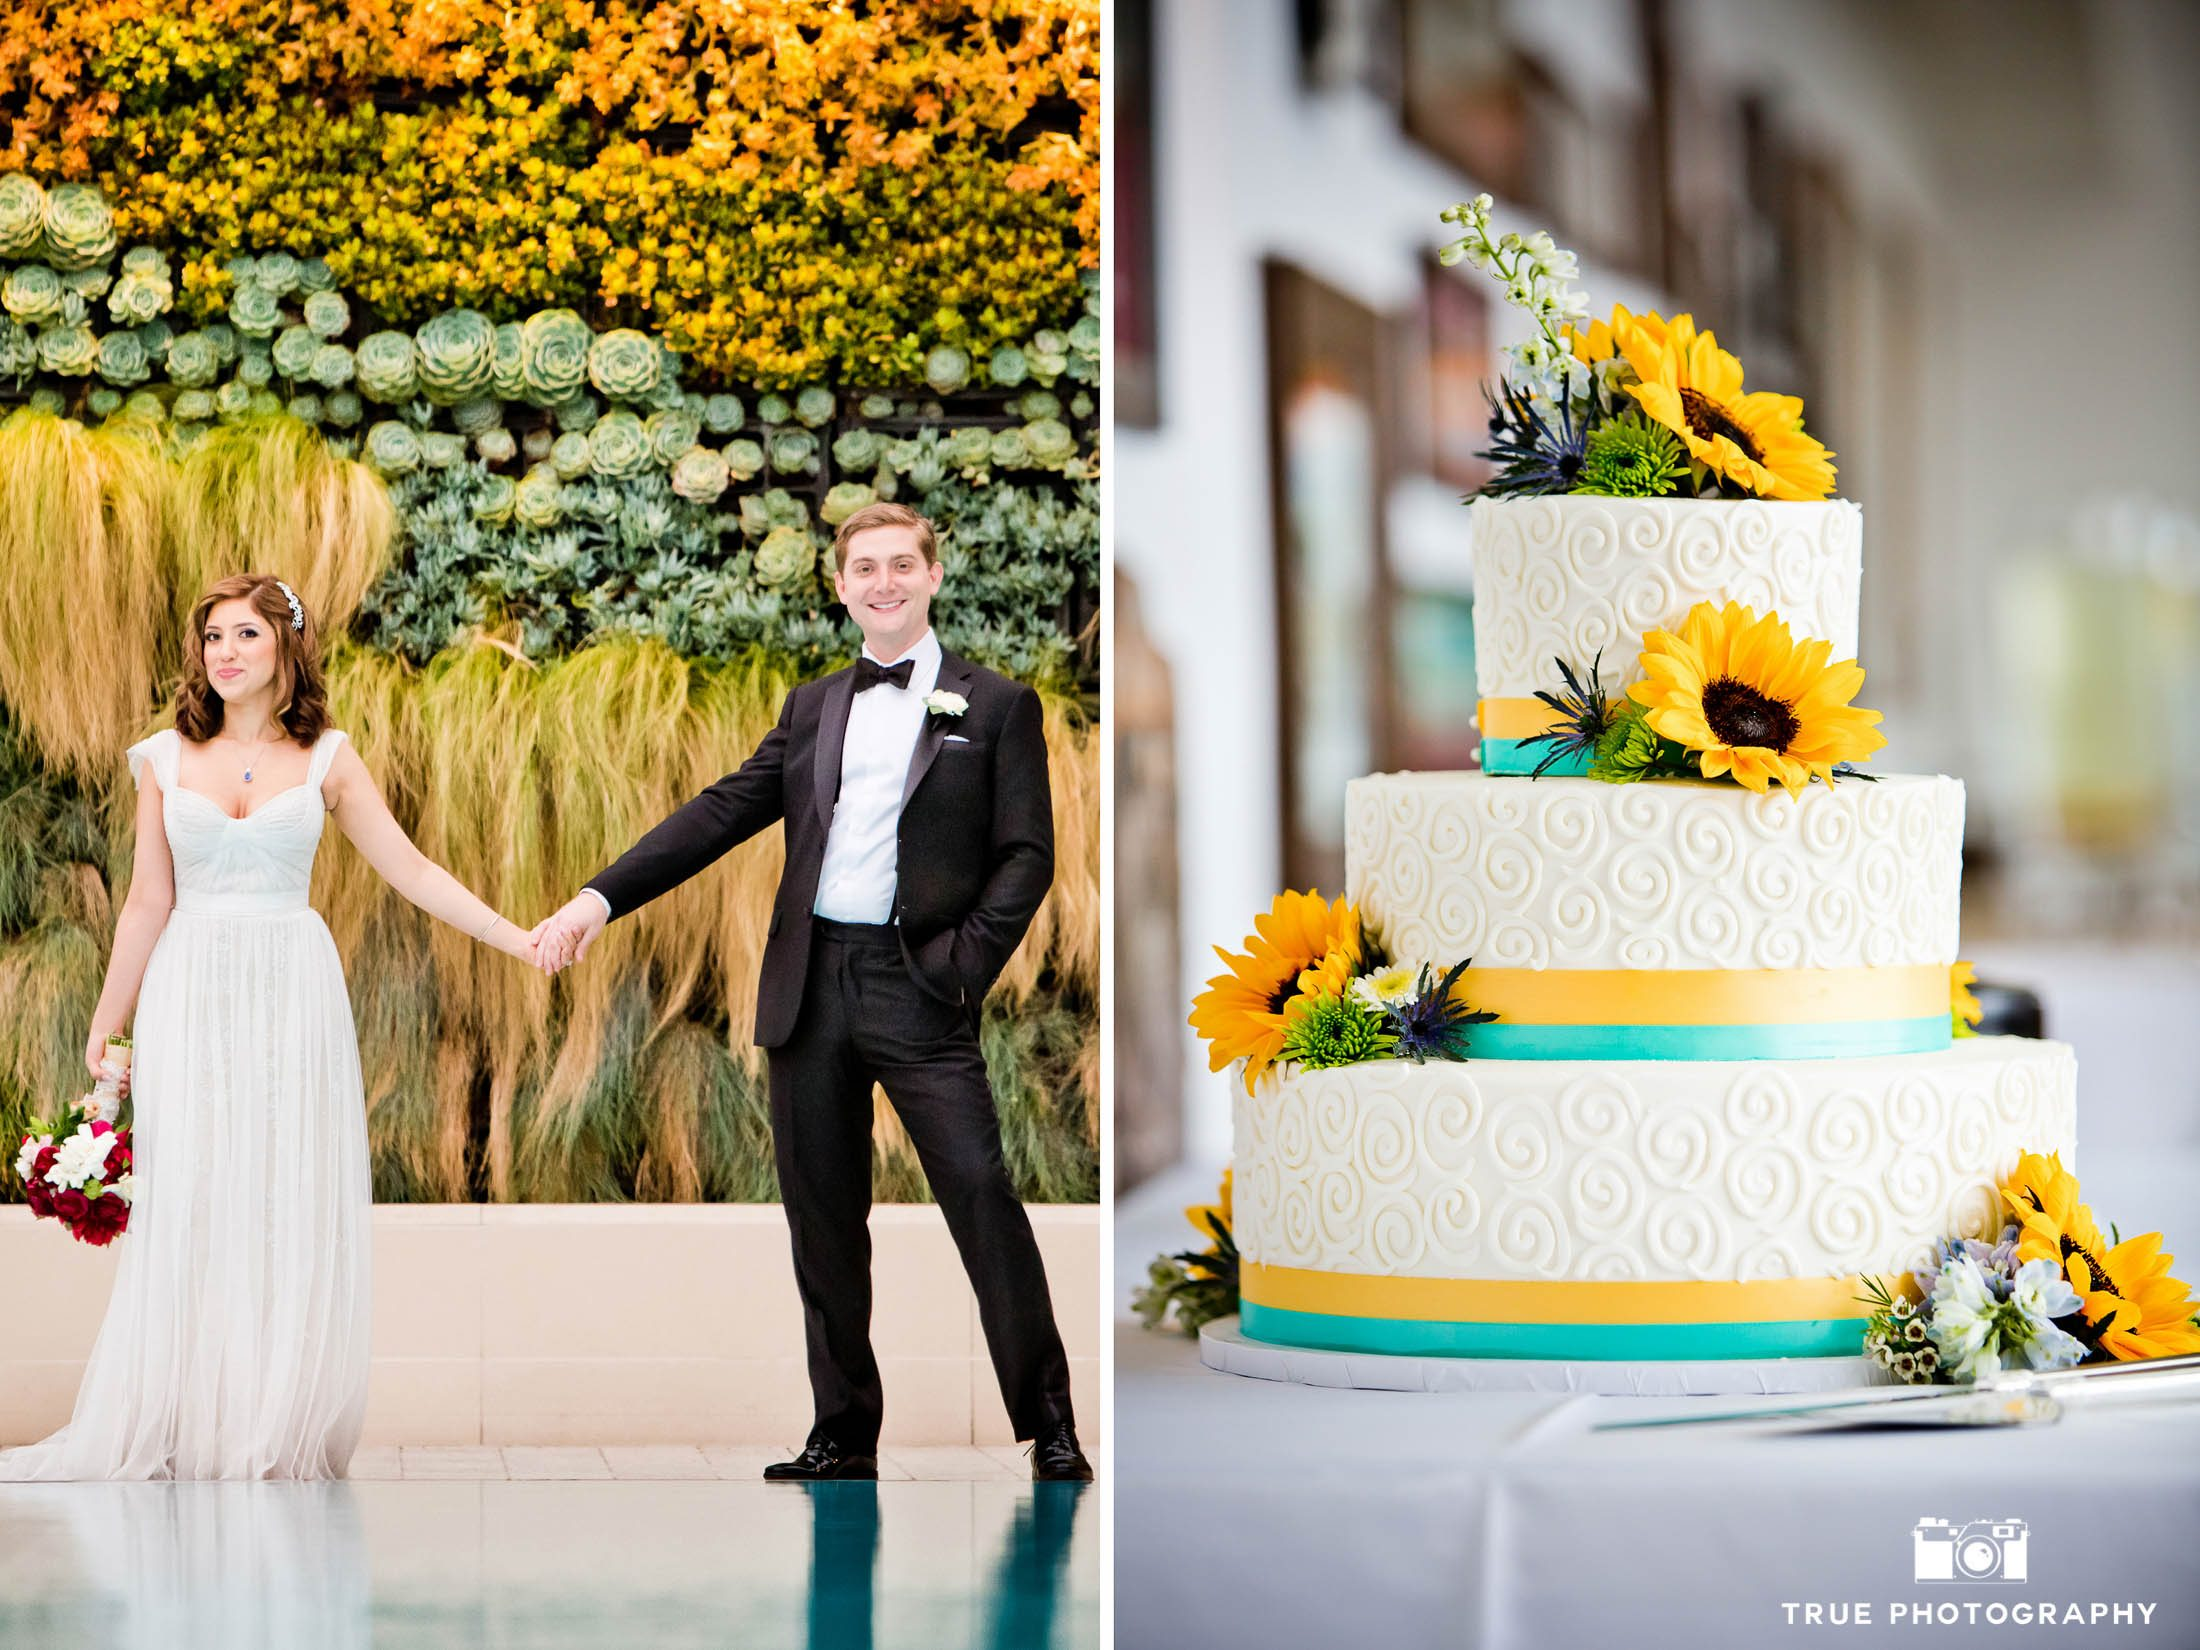 Wedding Couple and vibrant sunflower cake